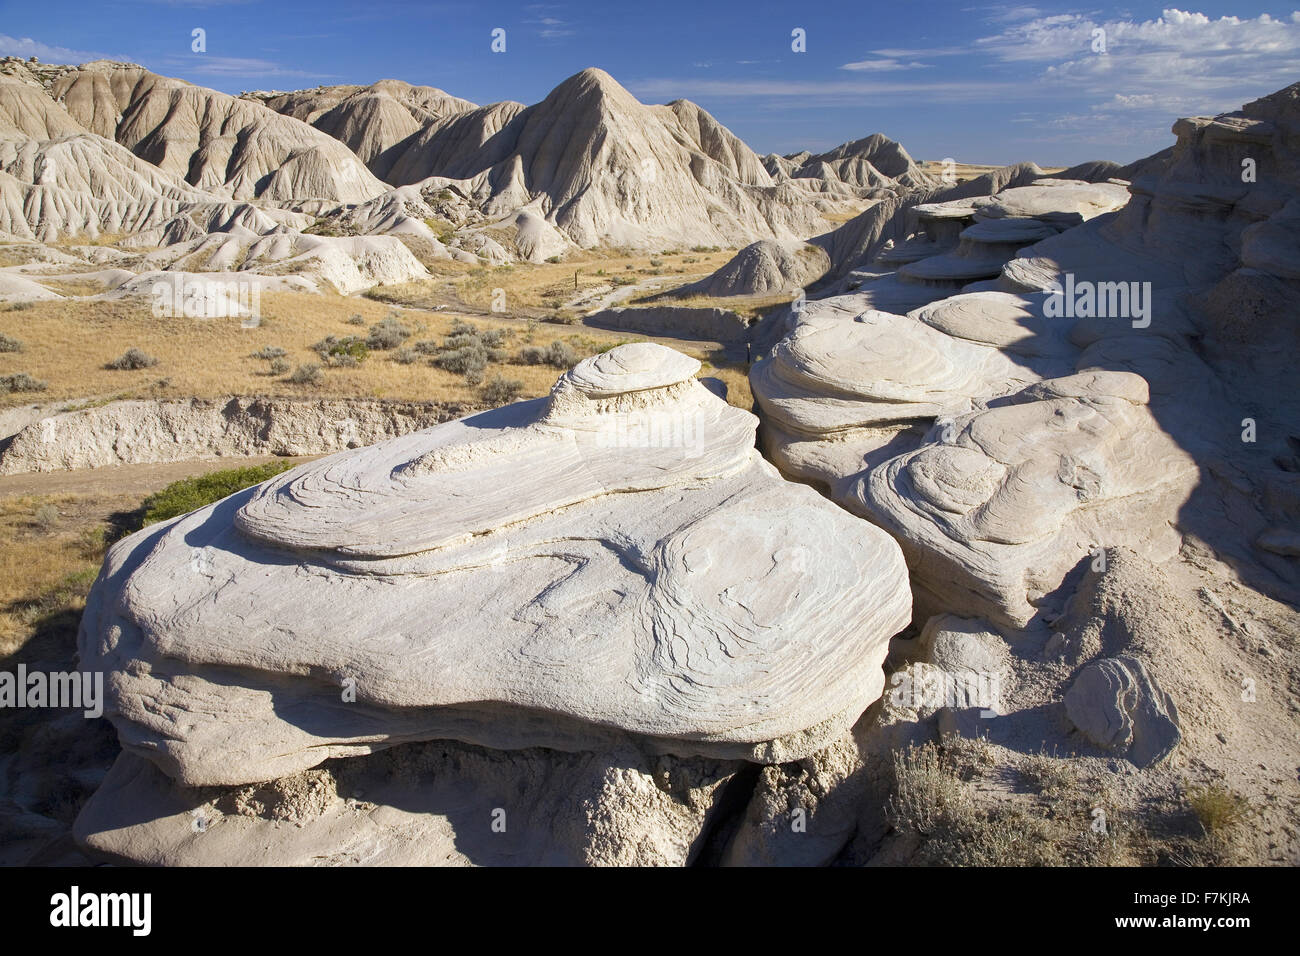 Rock formations in Toadstool Geologic Park, a region of badlands formed on the flank of the Pine Ridge Escarpment - Stock Image